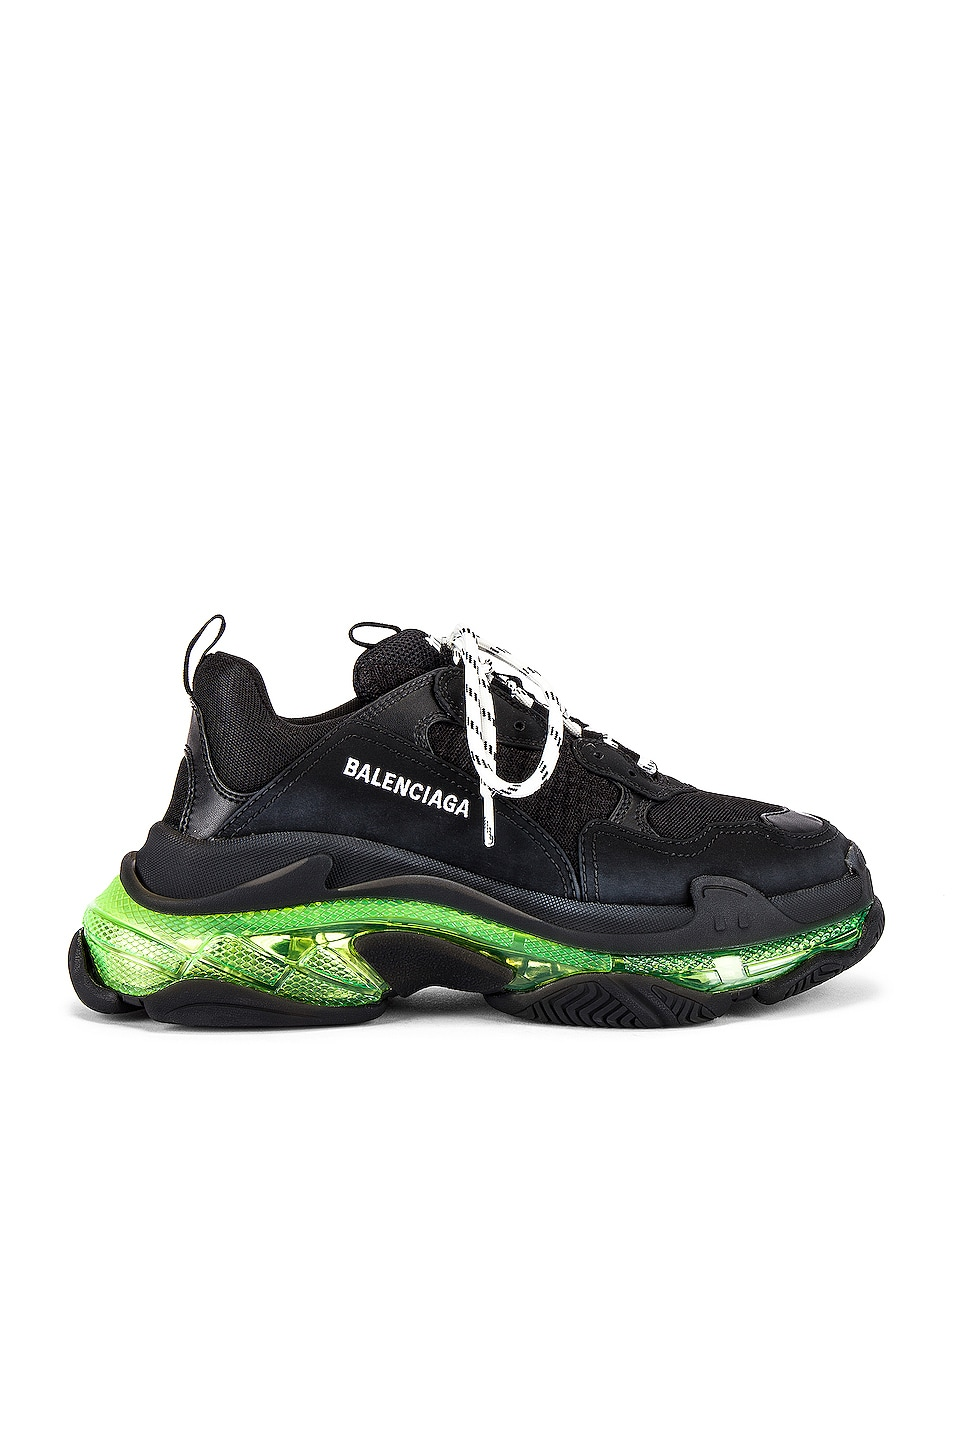 Image 1 of Balenciaga Triple S Clear Sole in Black & Yellow Fluo